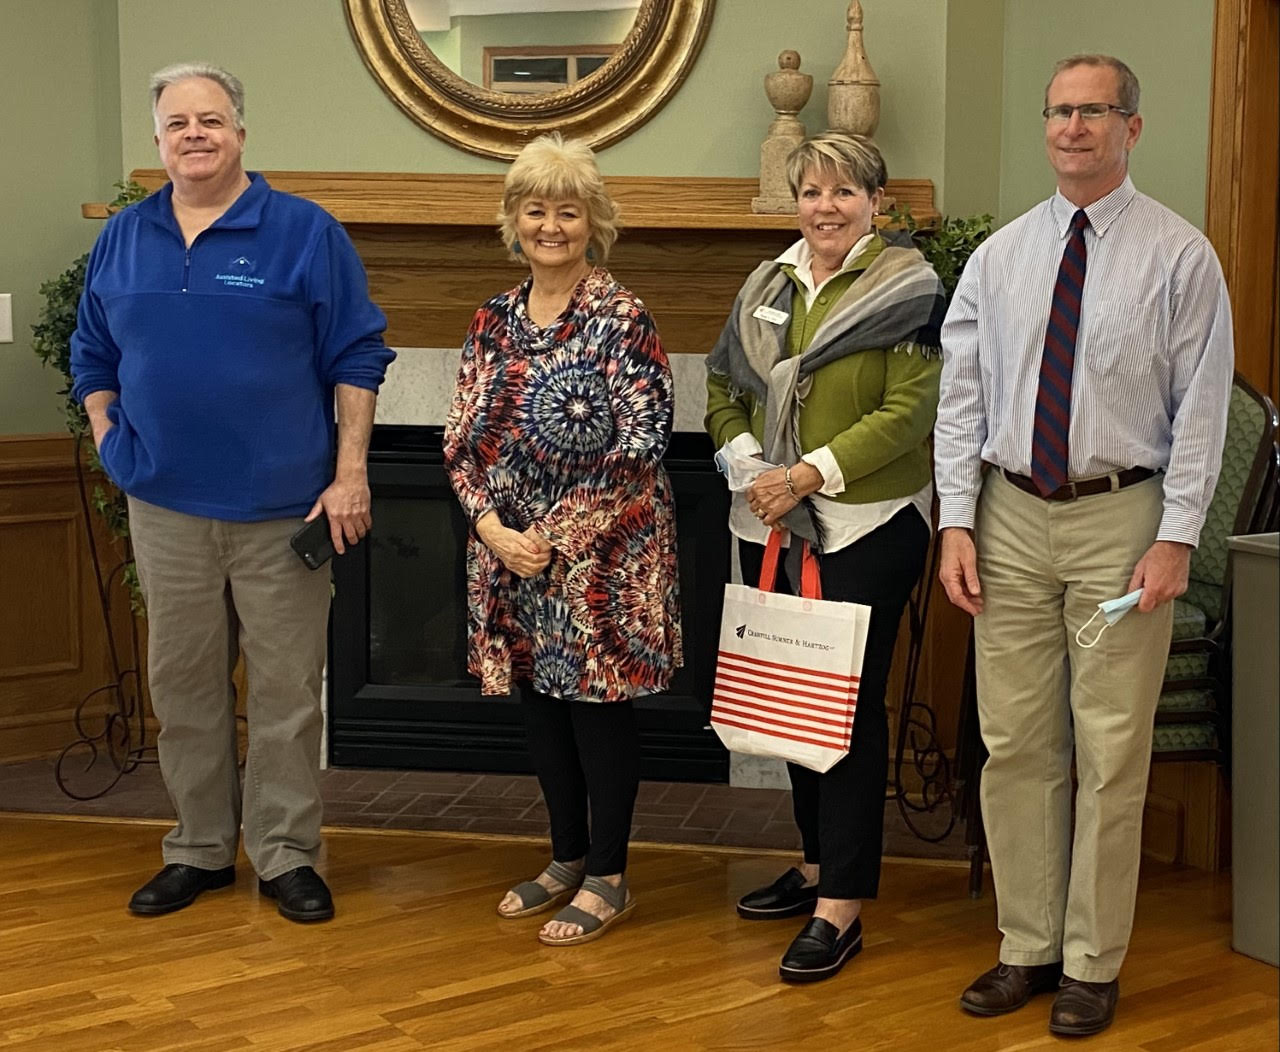 L to R: Mike Hartmann with Assisted Living Locators, Barbara Mullins, Sue Fryt with the Elder Law Group of Cranfill Sumner LLP, and Wes Davis, Executive Director of Pender Adult Services